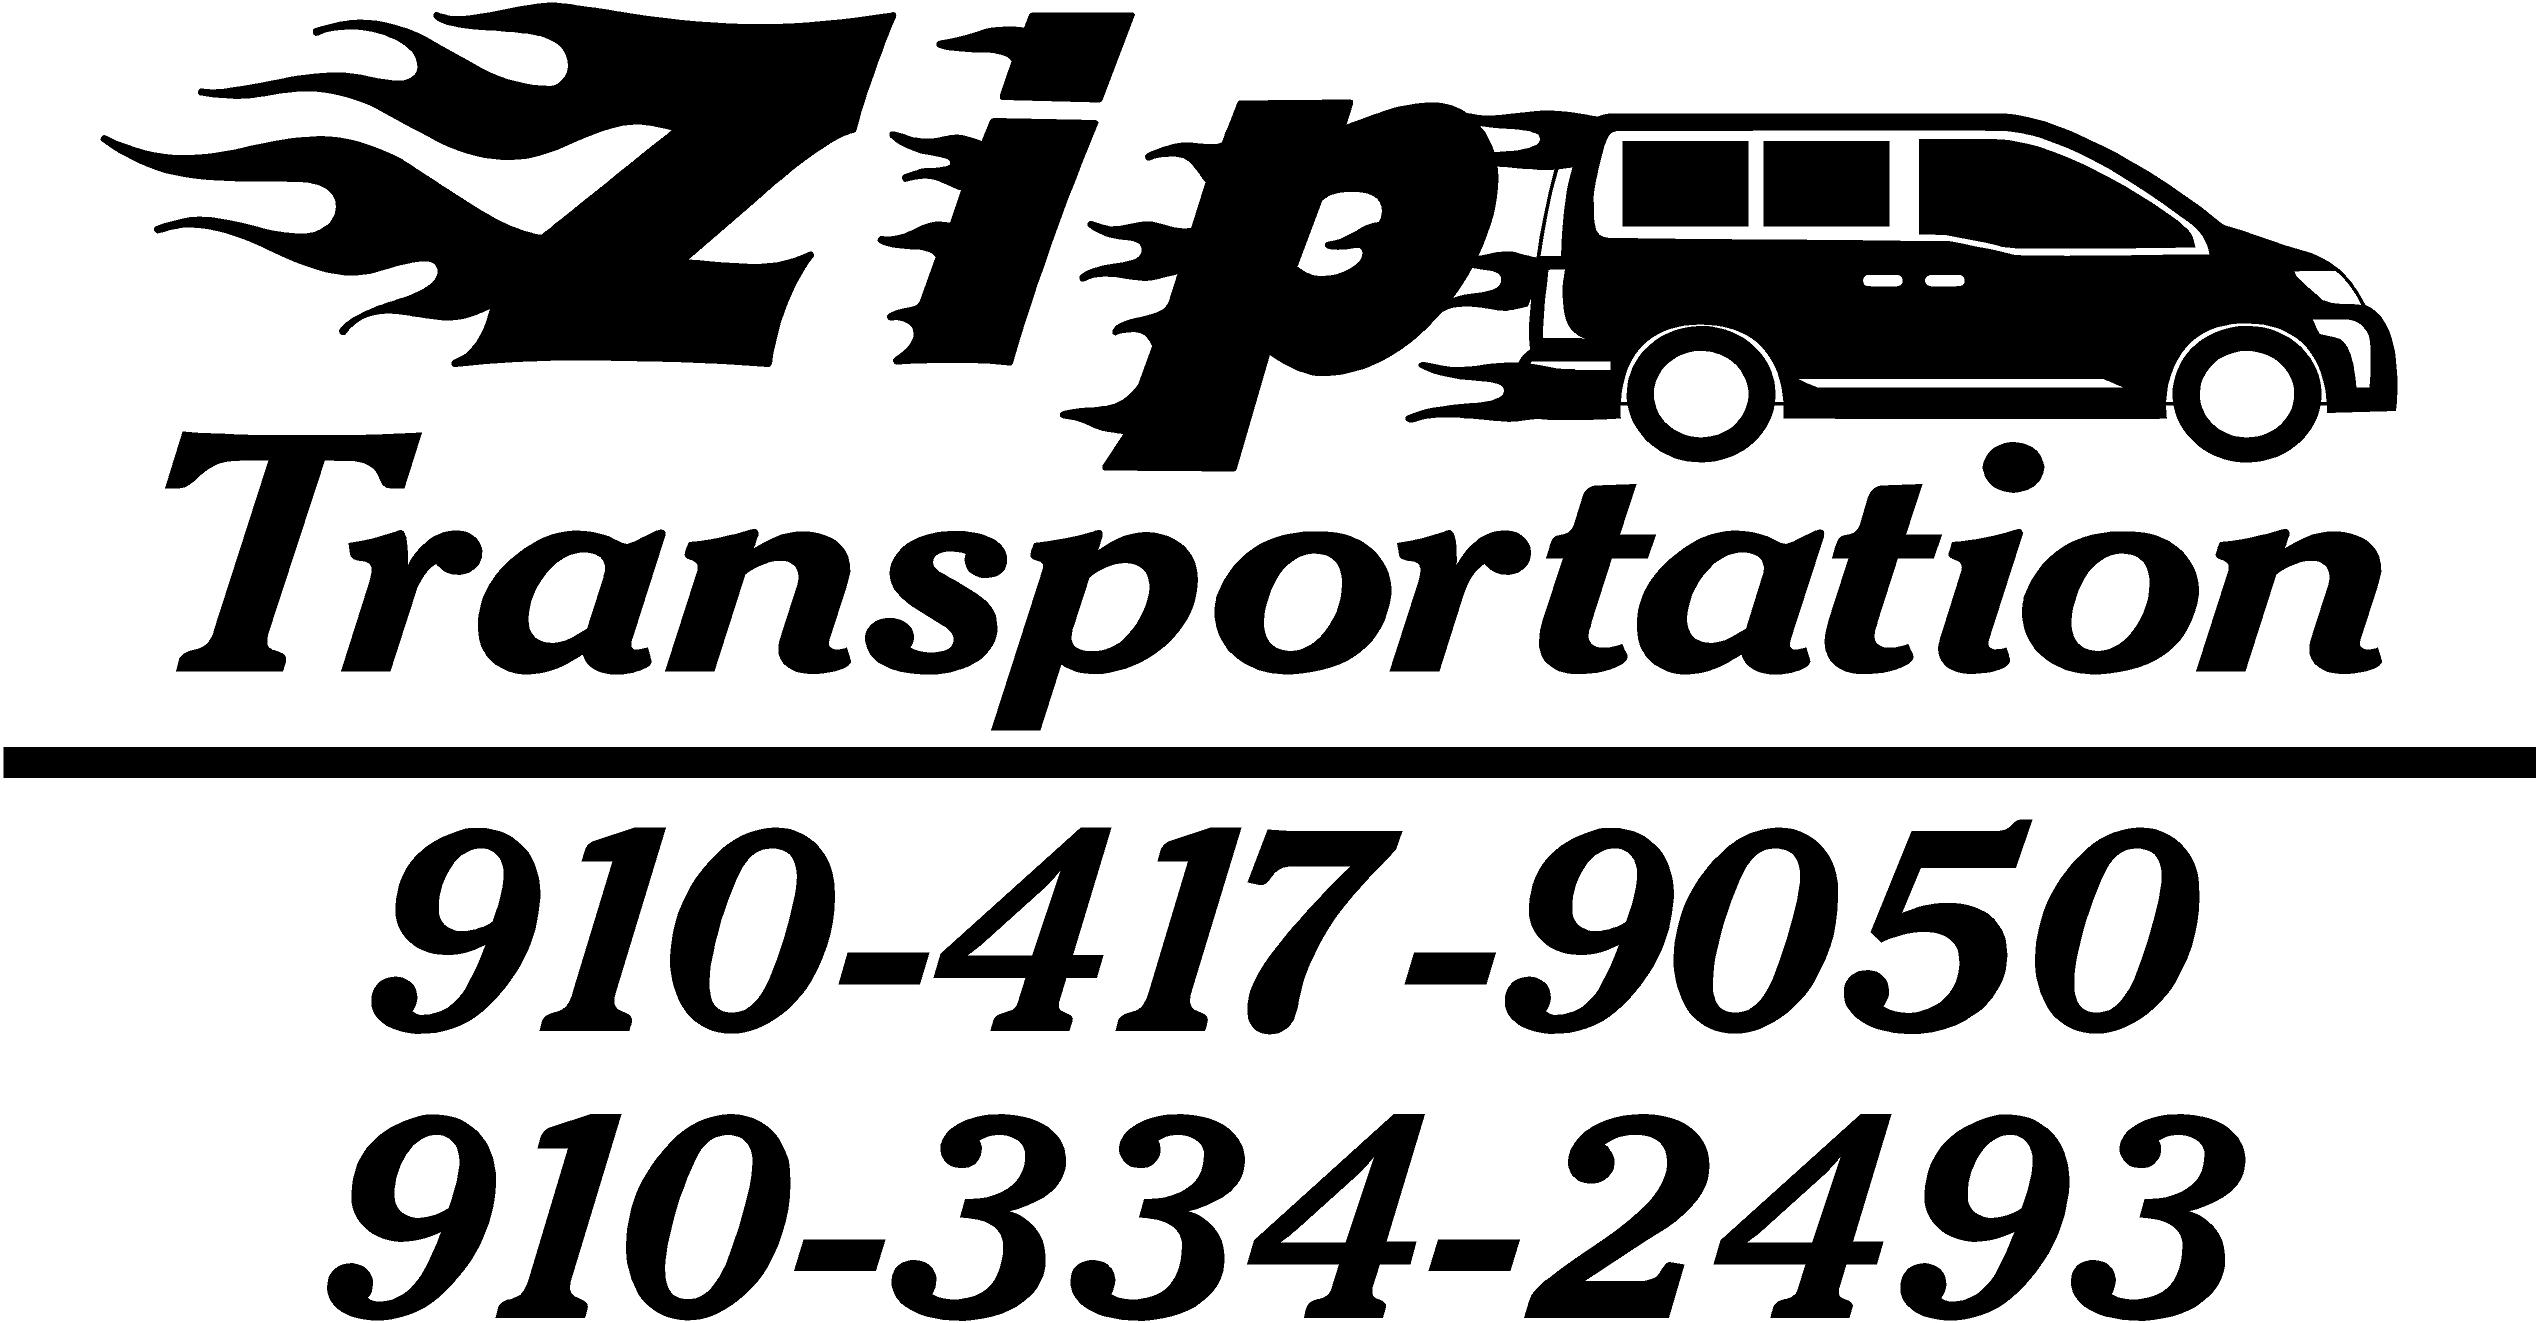 zip transport